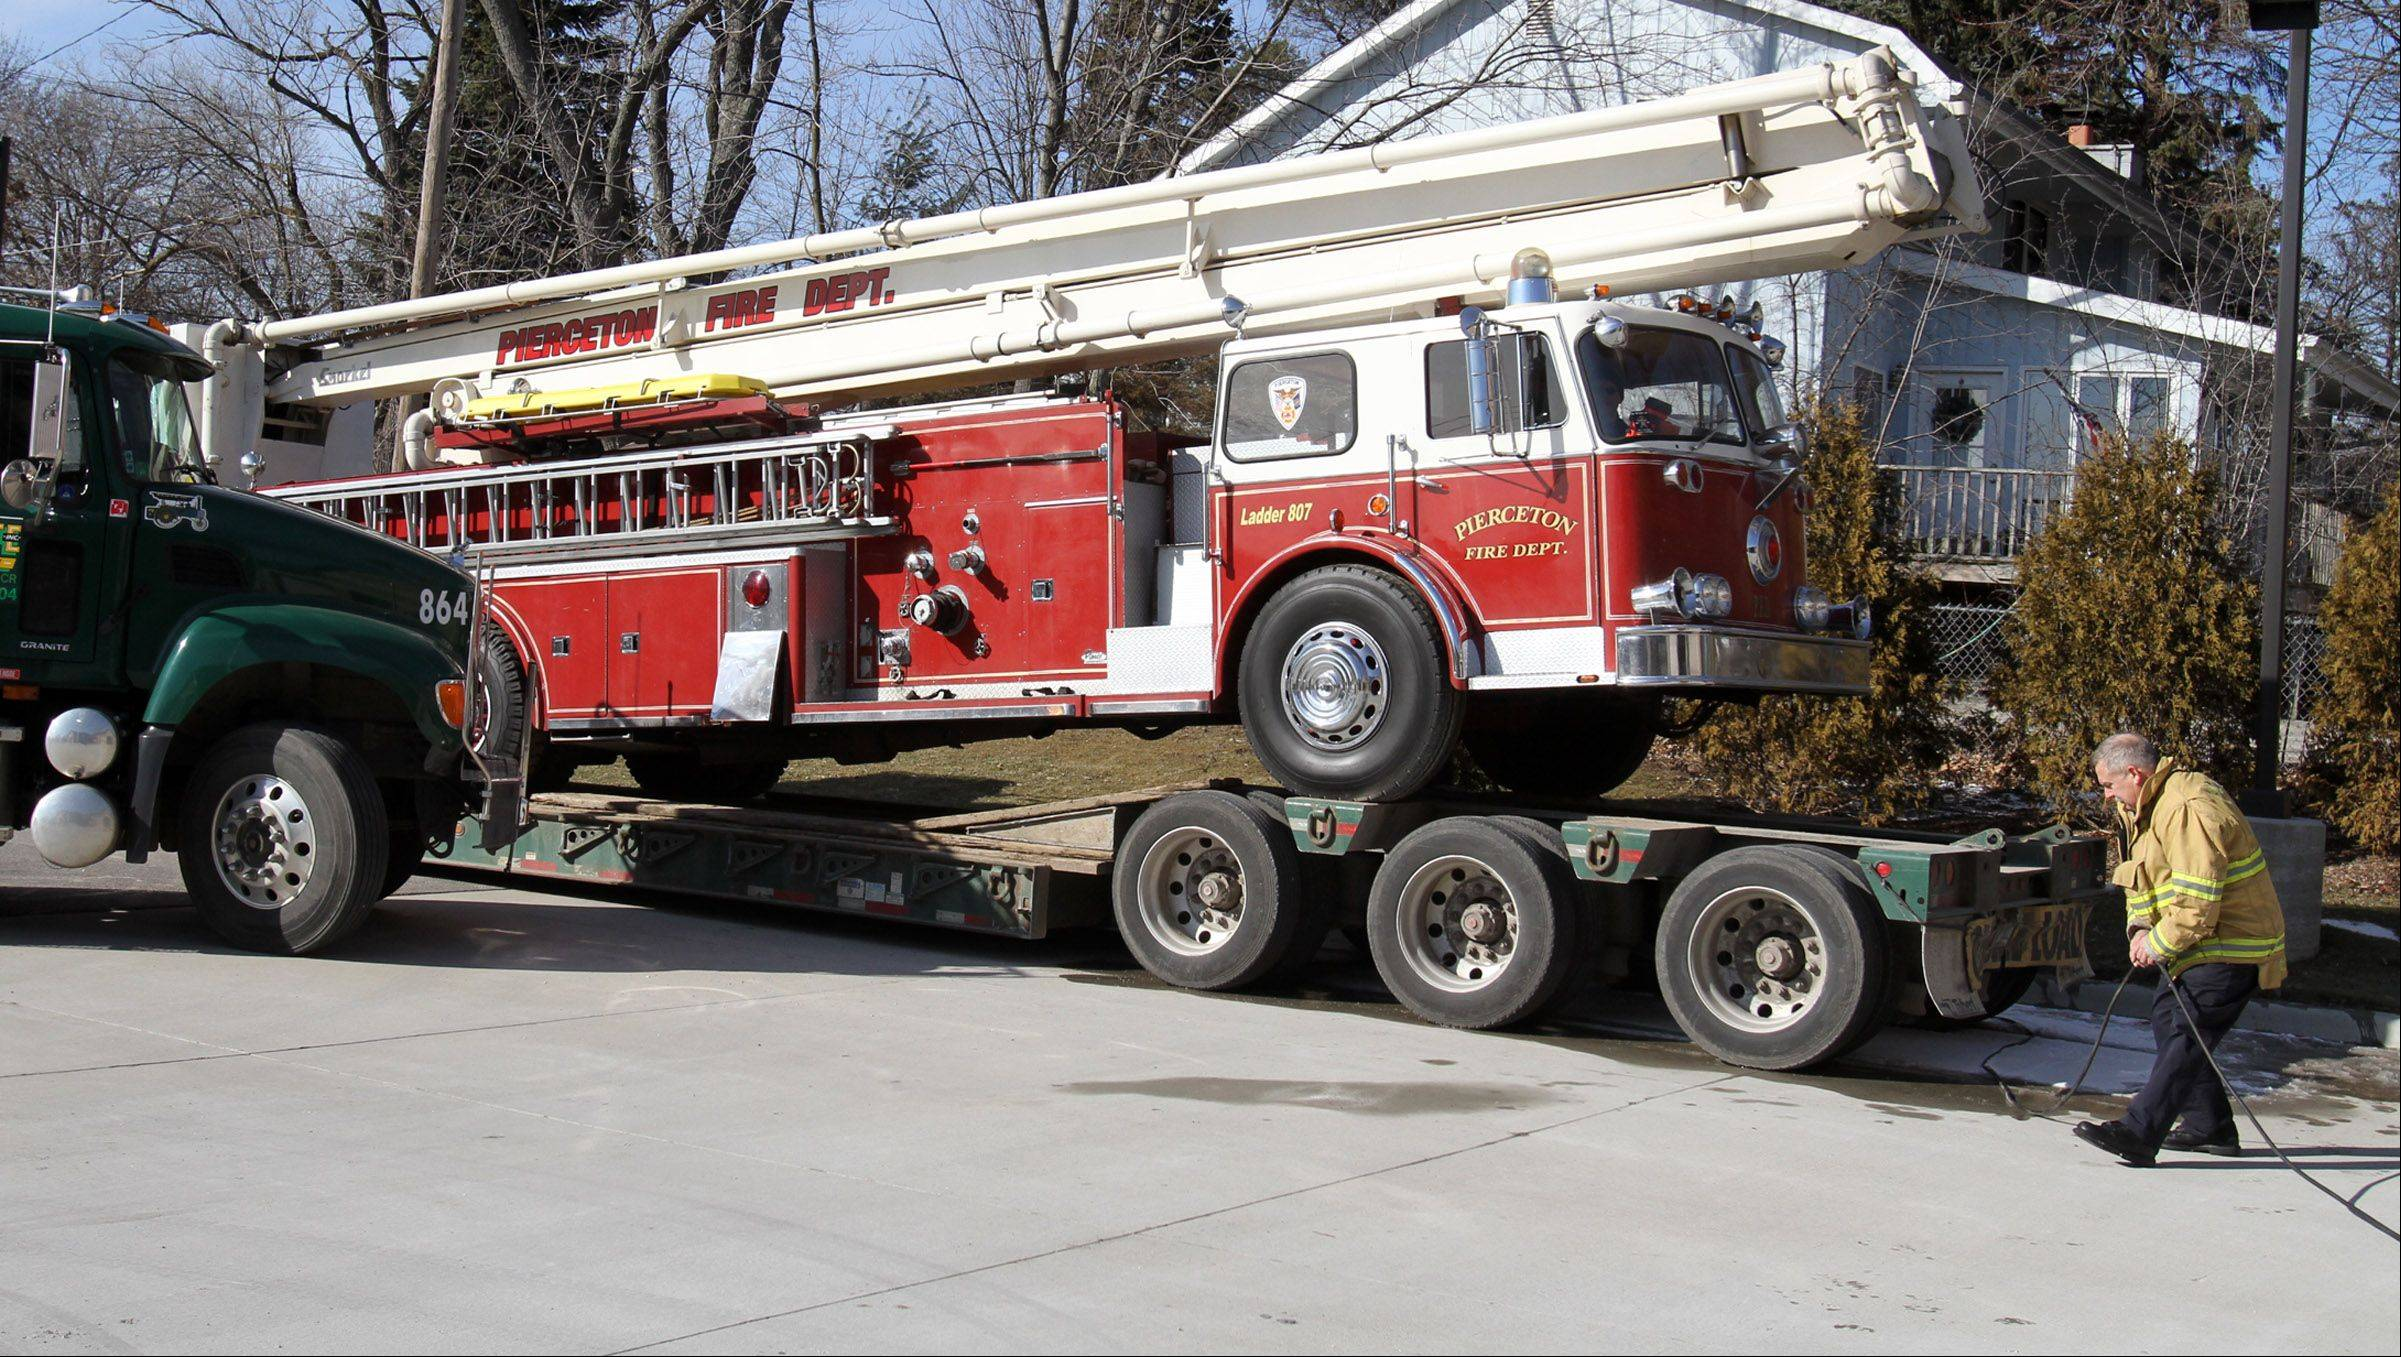 Palatine Fire Captain Jeff Bober on Wednesday helps unload the same Snorkel fire truck that was used in the Ben Franklin store fire Feb. 23, 1973. The truck was delivered from an Indiana fire department to be part of this weekend's ceremony.